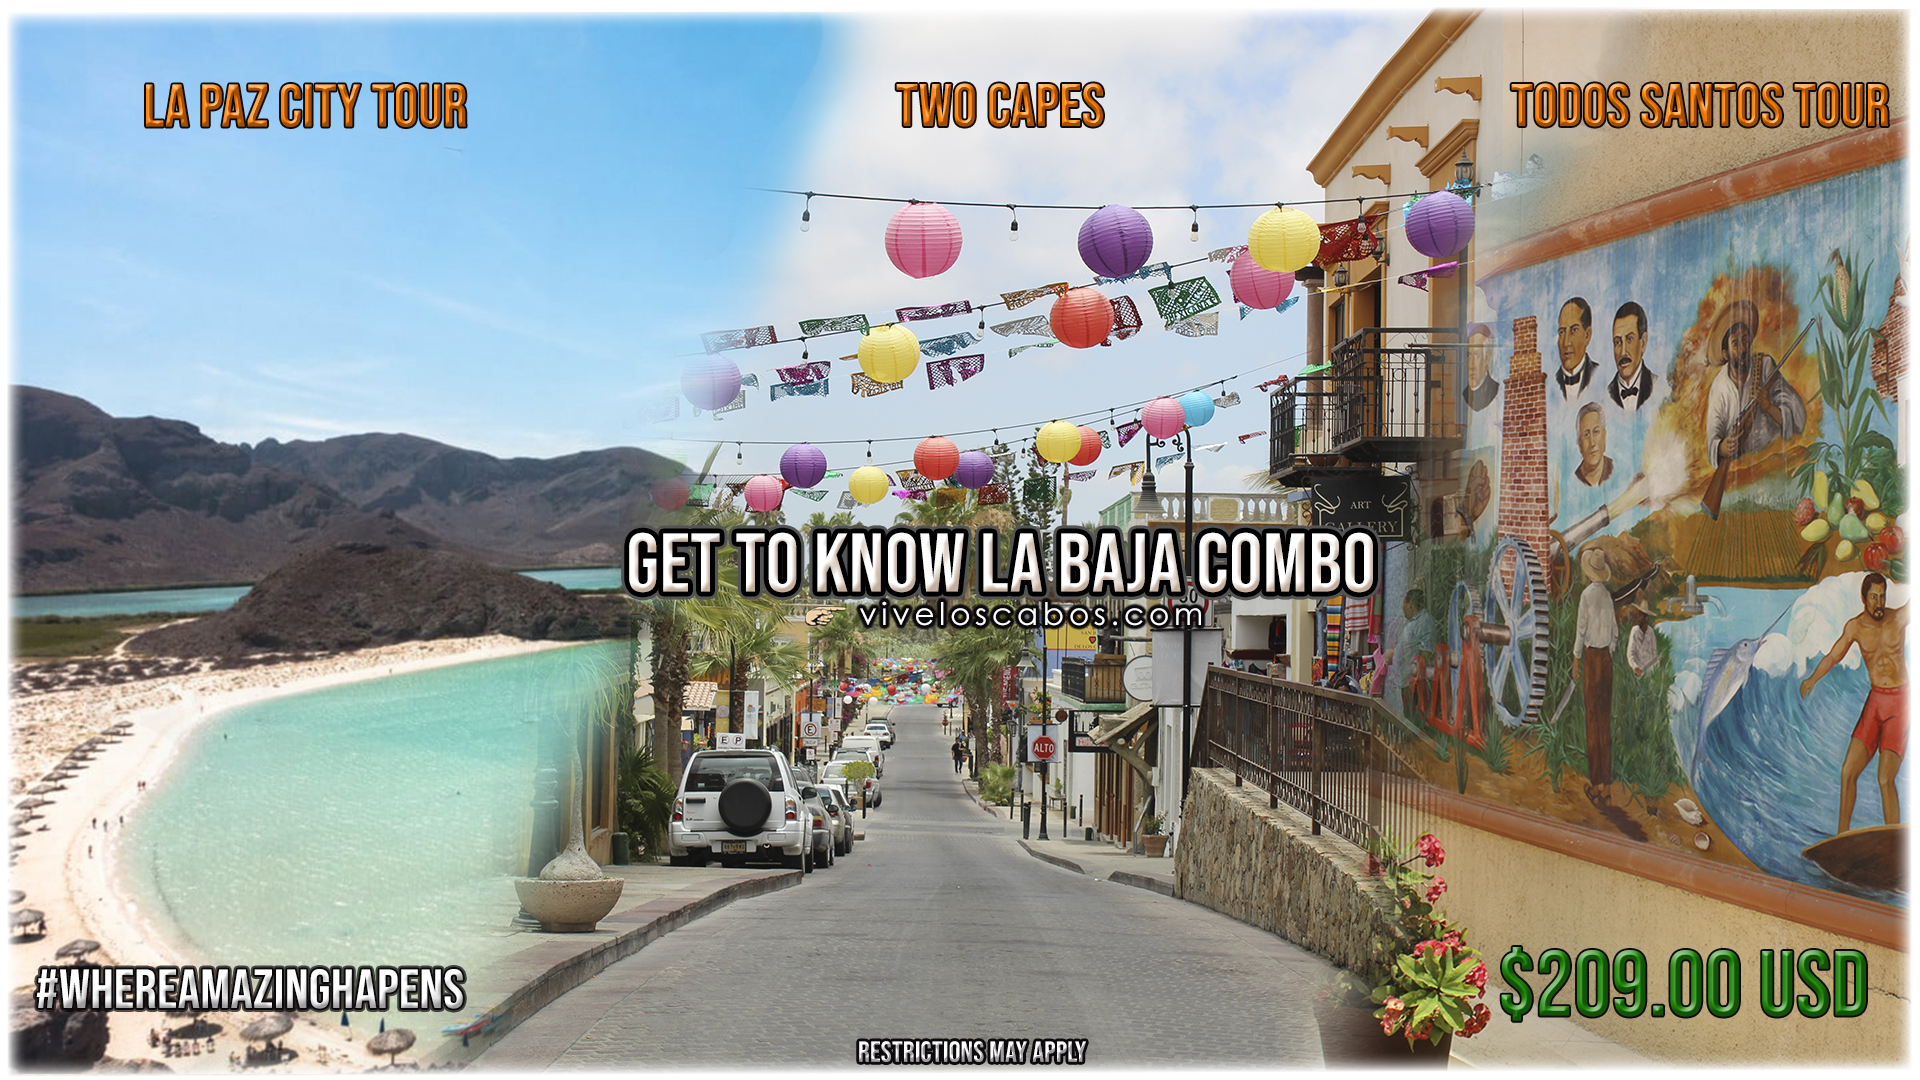 Get to know Baja Combo